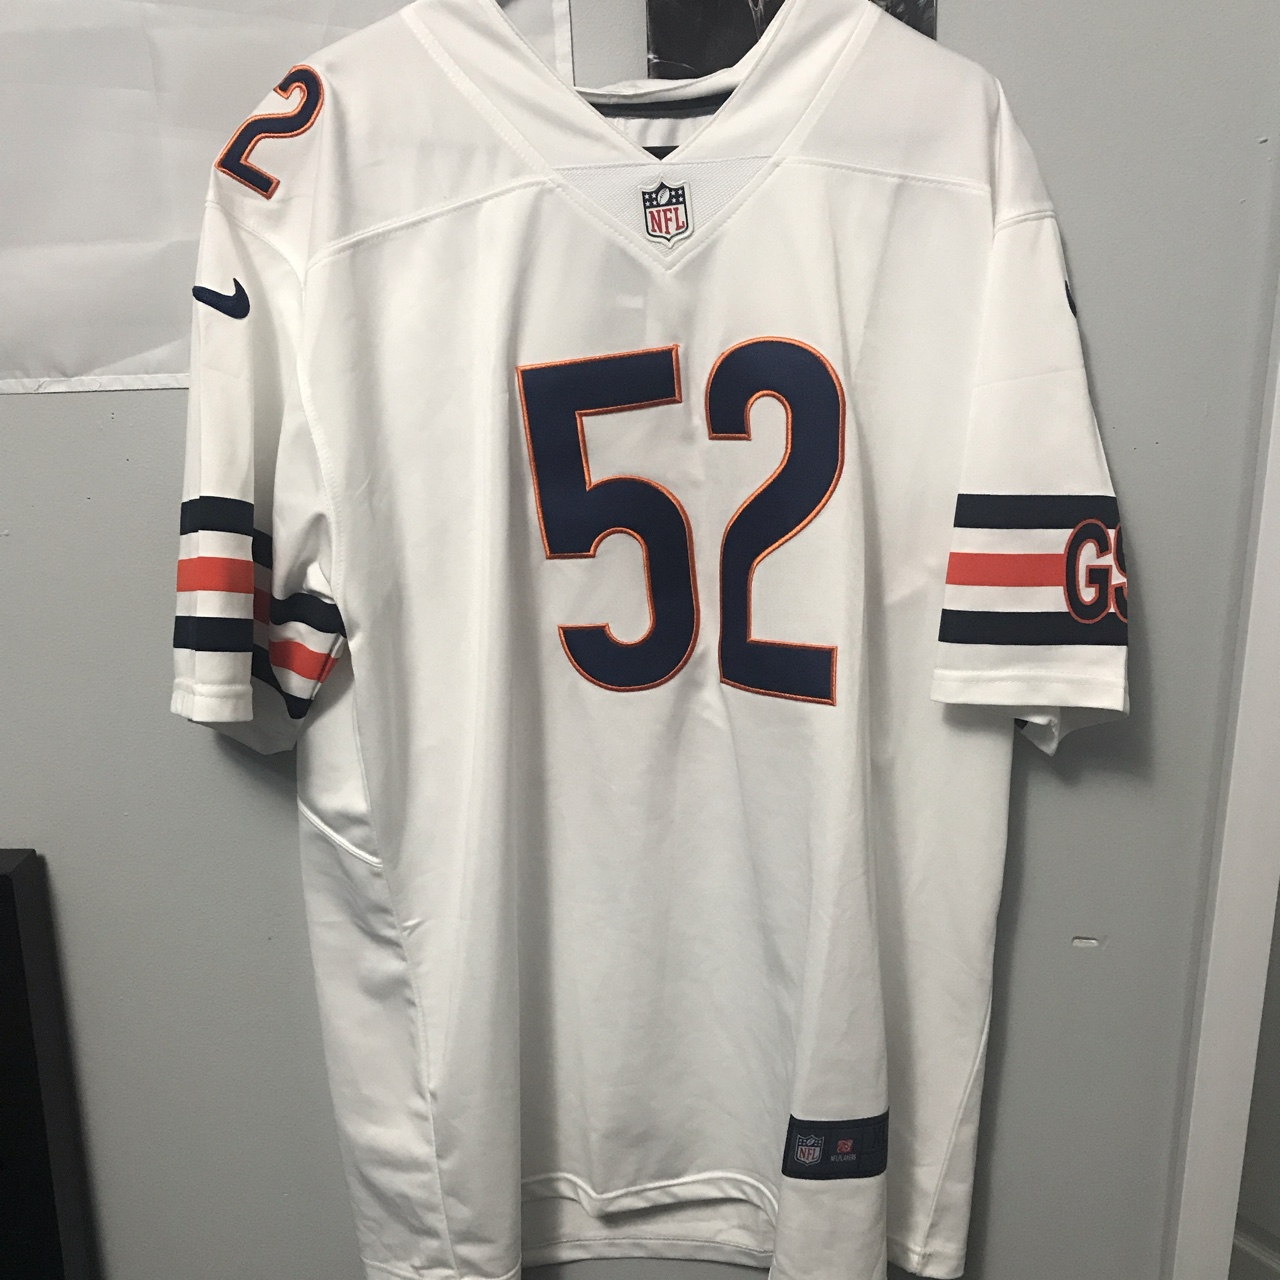 sports shoes 286e7 aca8c Chicago Bears Khalil Mack jersey. White nike... - Depop